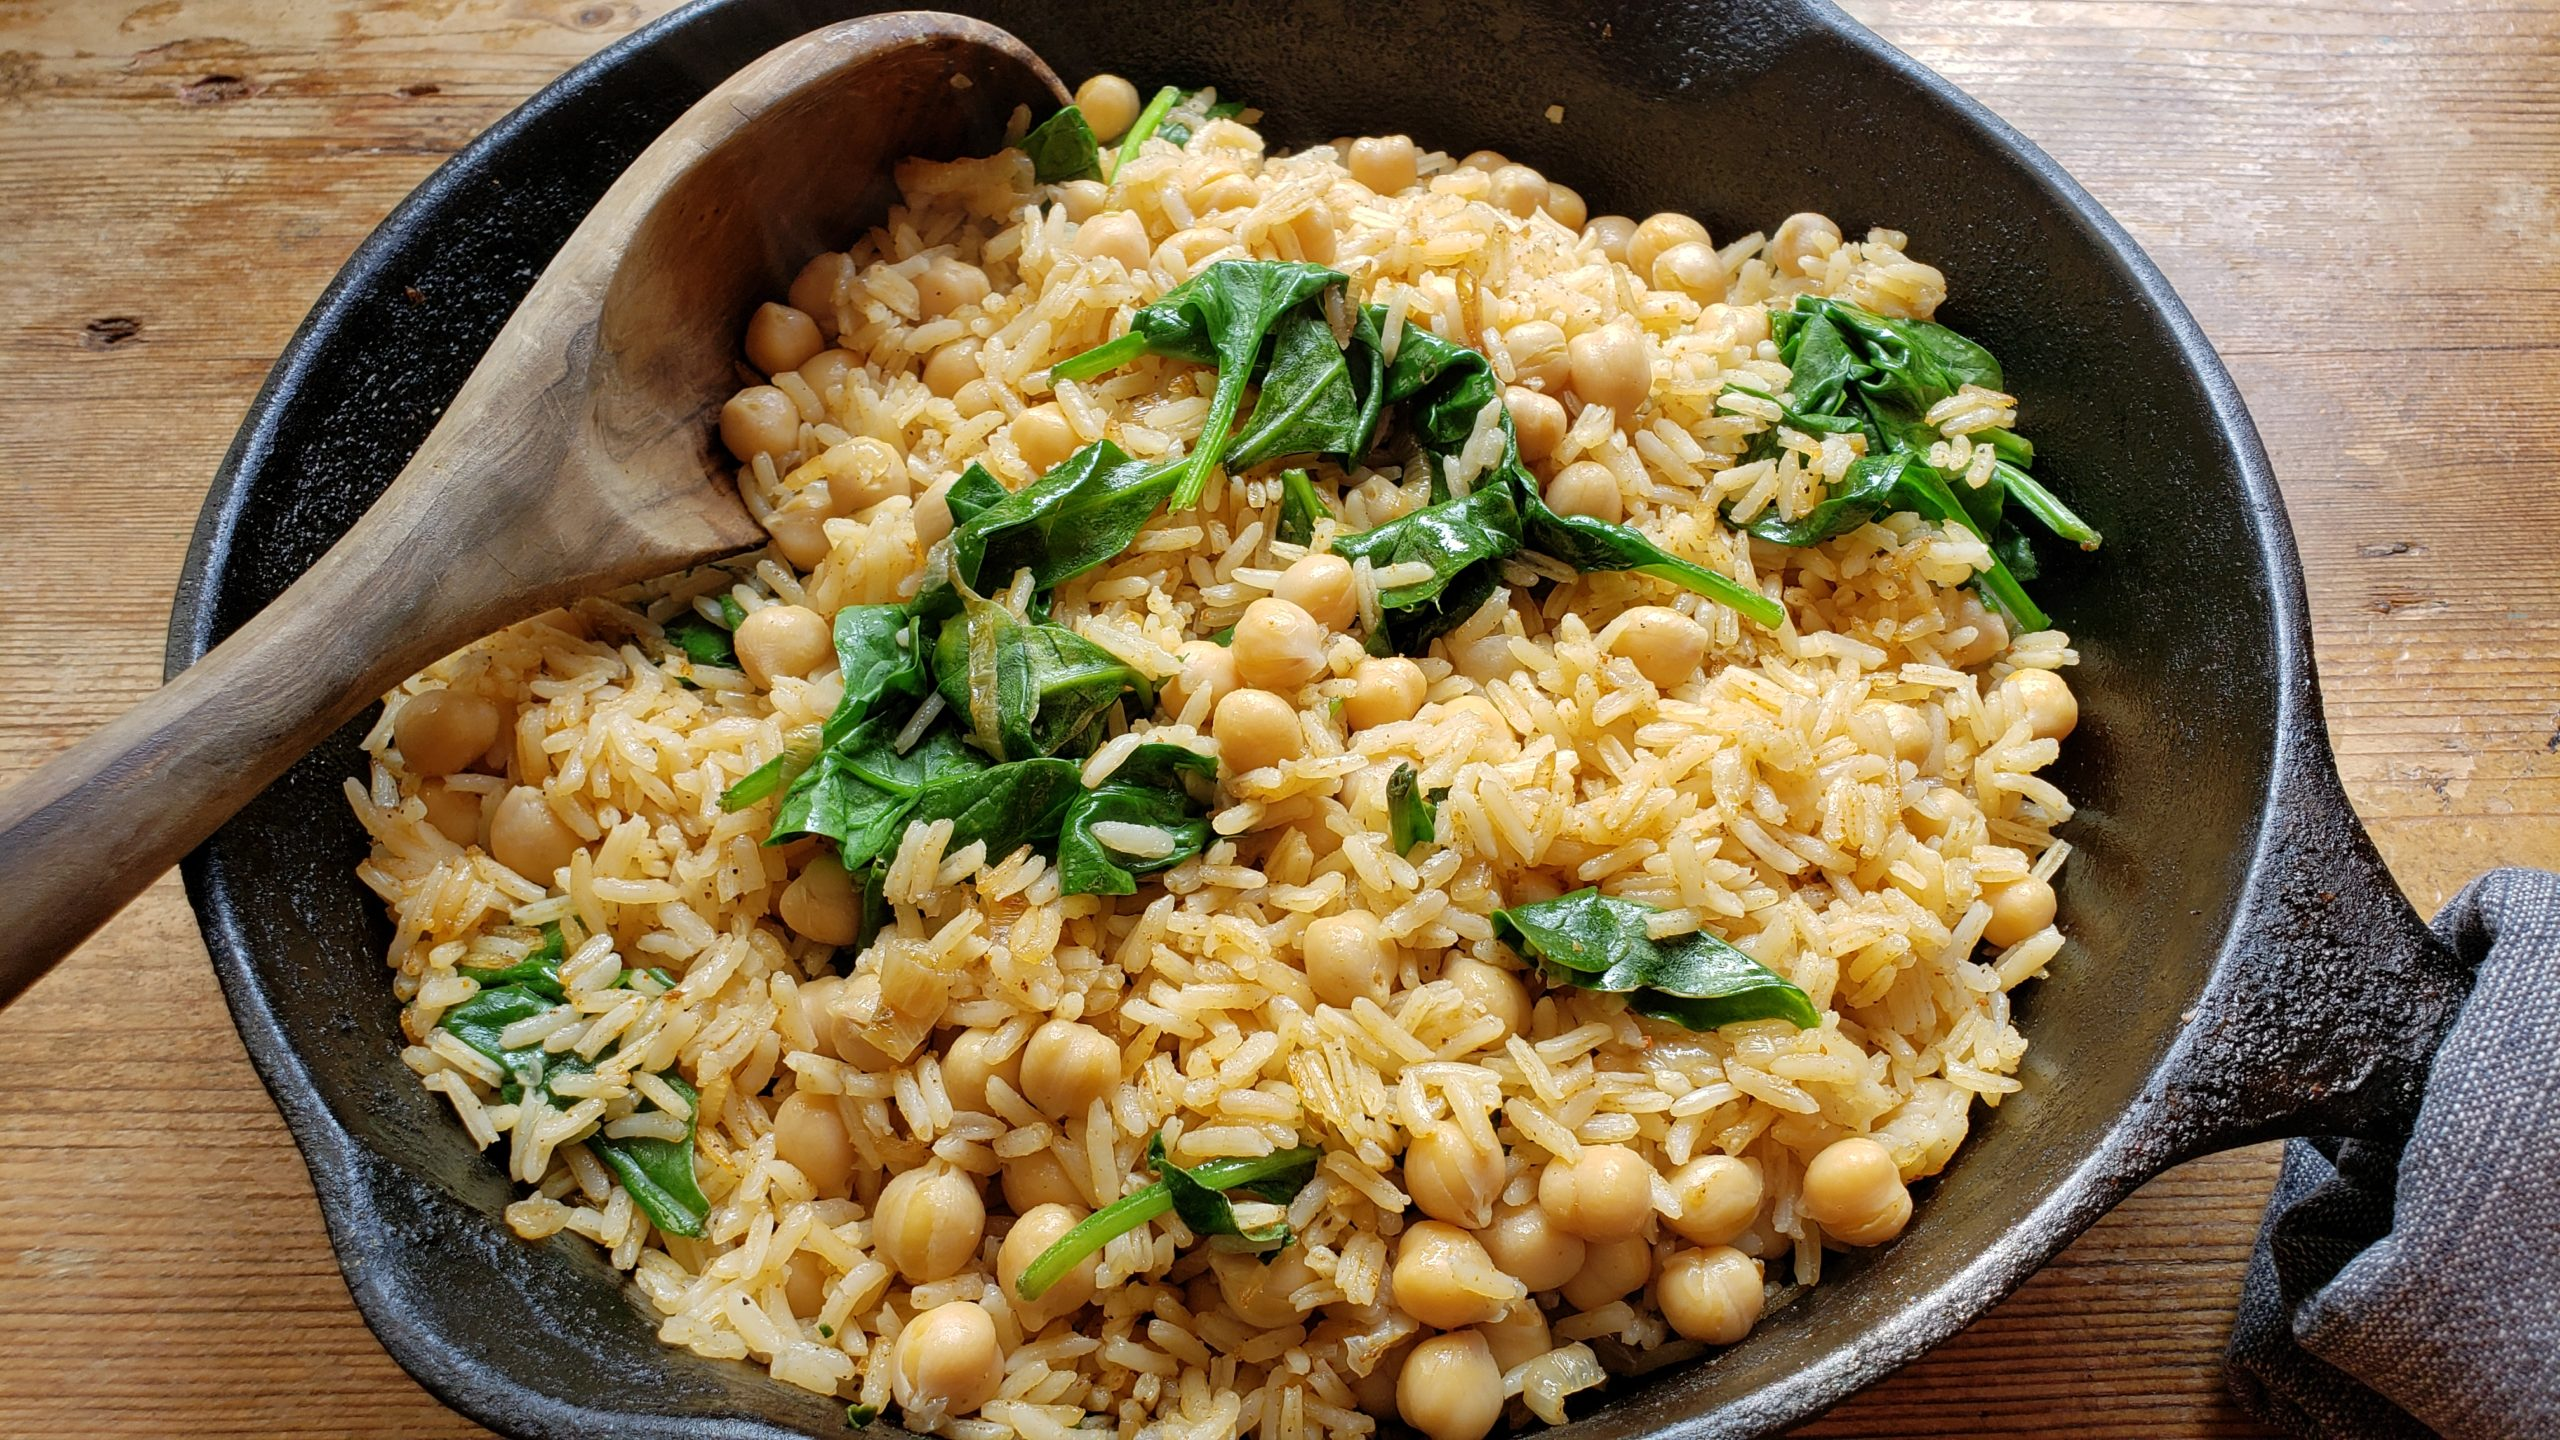 Baked Rice with Chickpeas and Spinach